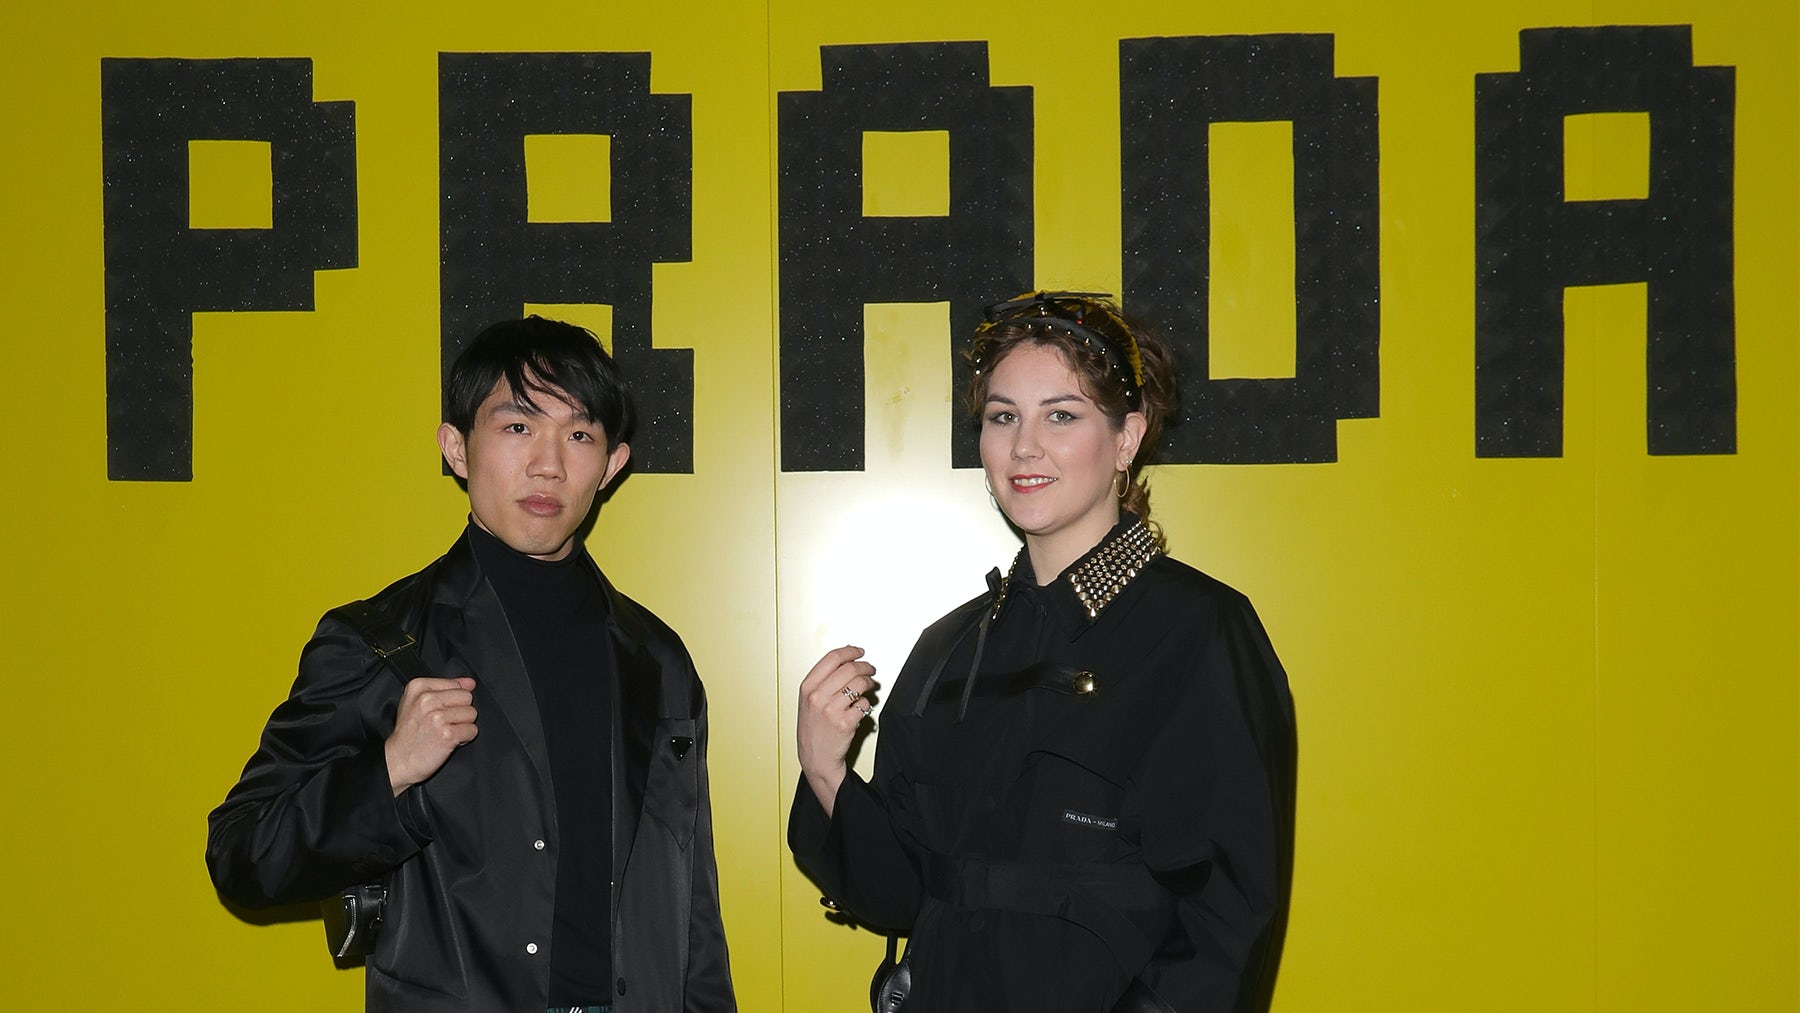 Tony Liu and Lindsey Schuyler   Source: Getty Images